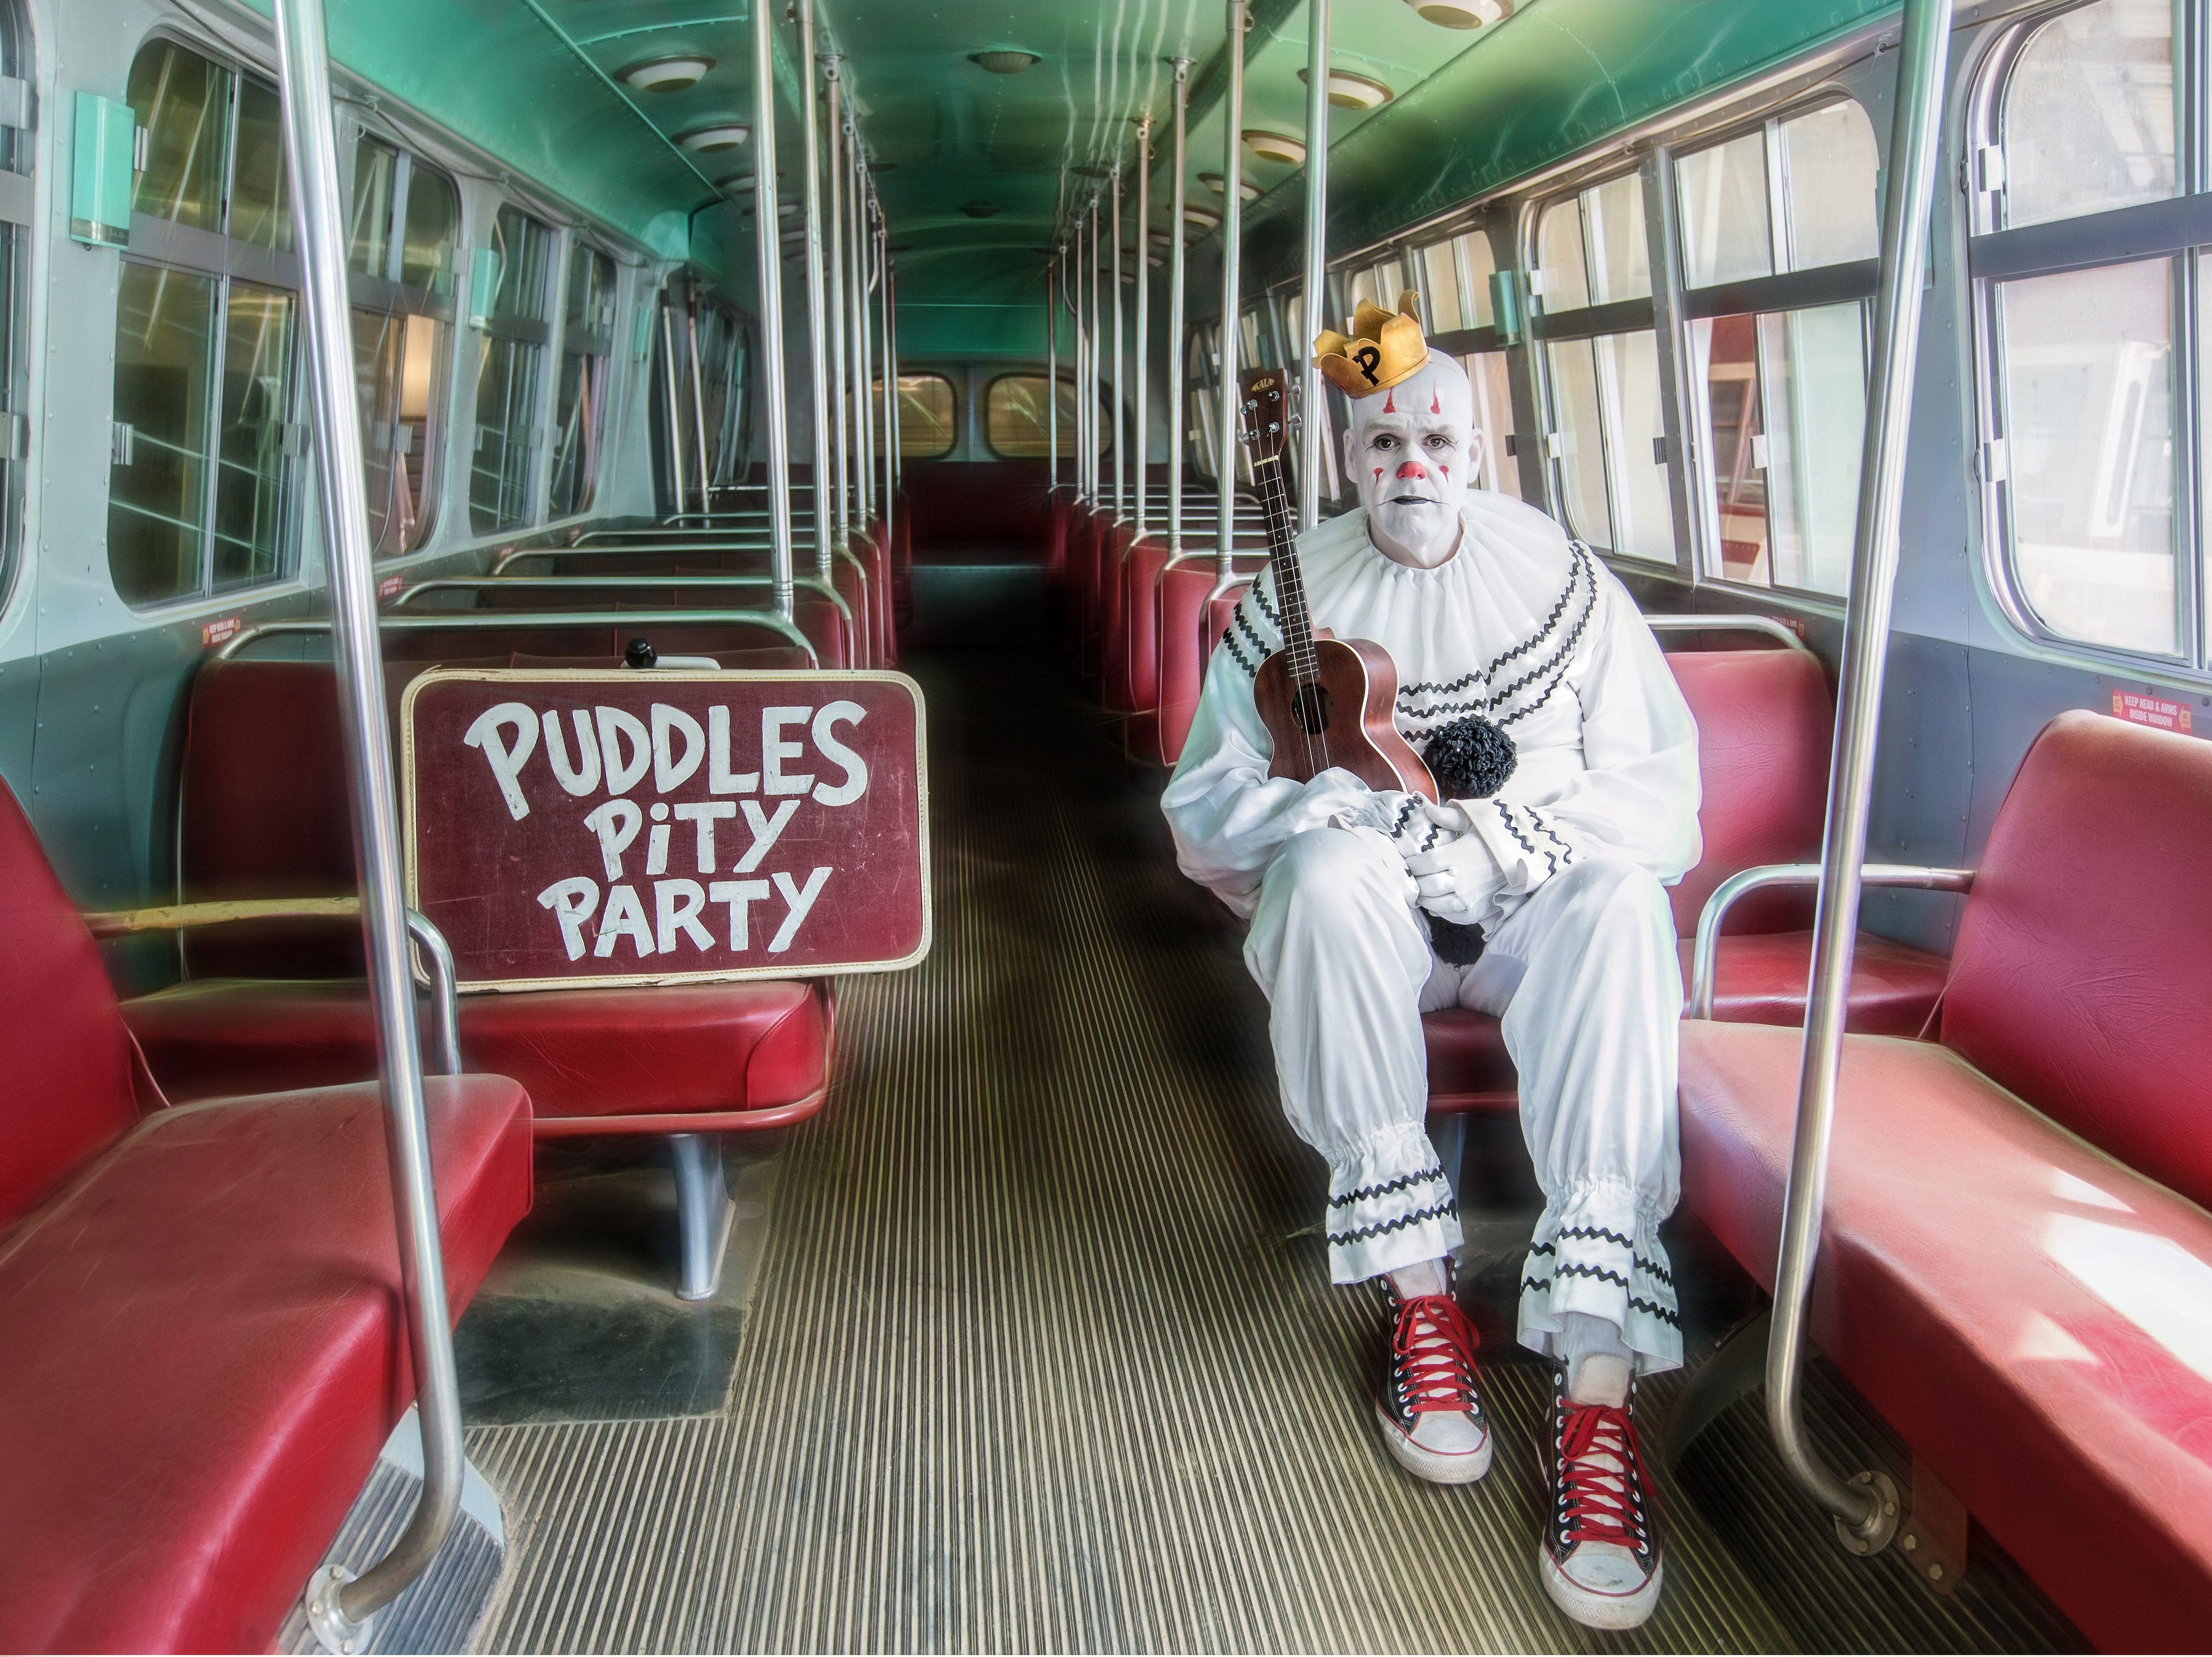 Puddles Pity Party: Why does Asbury Park make this giant sad clown  happy?